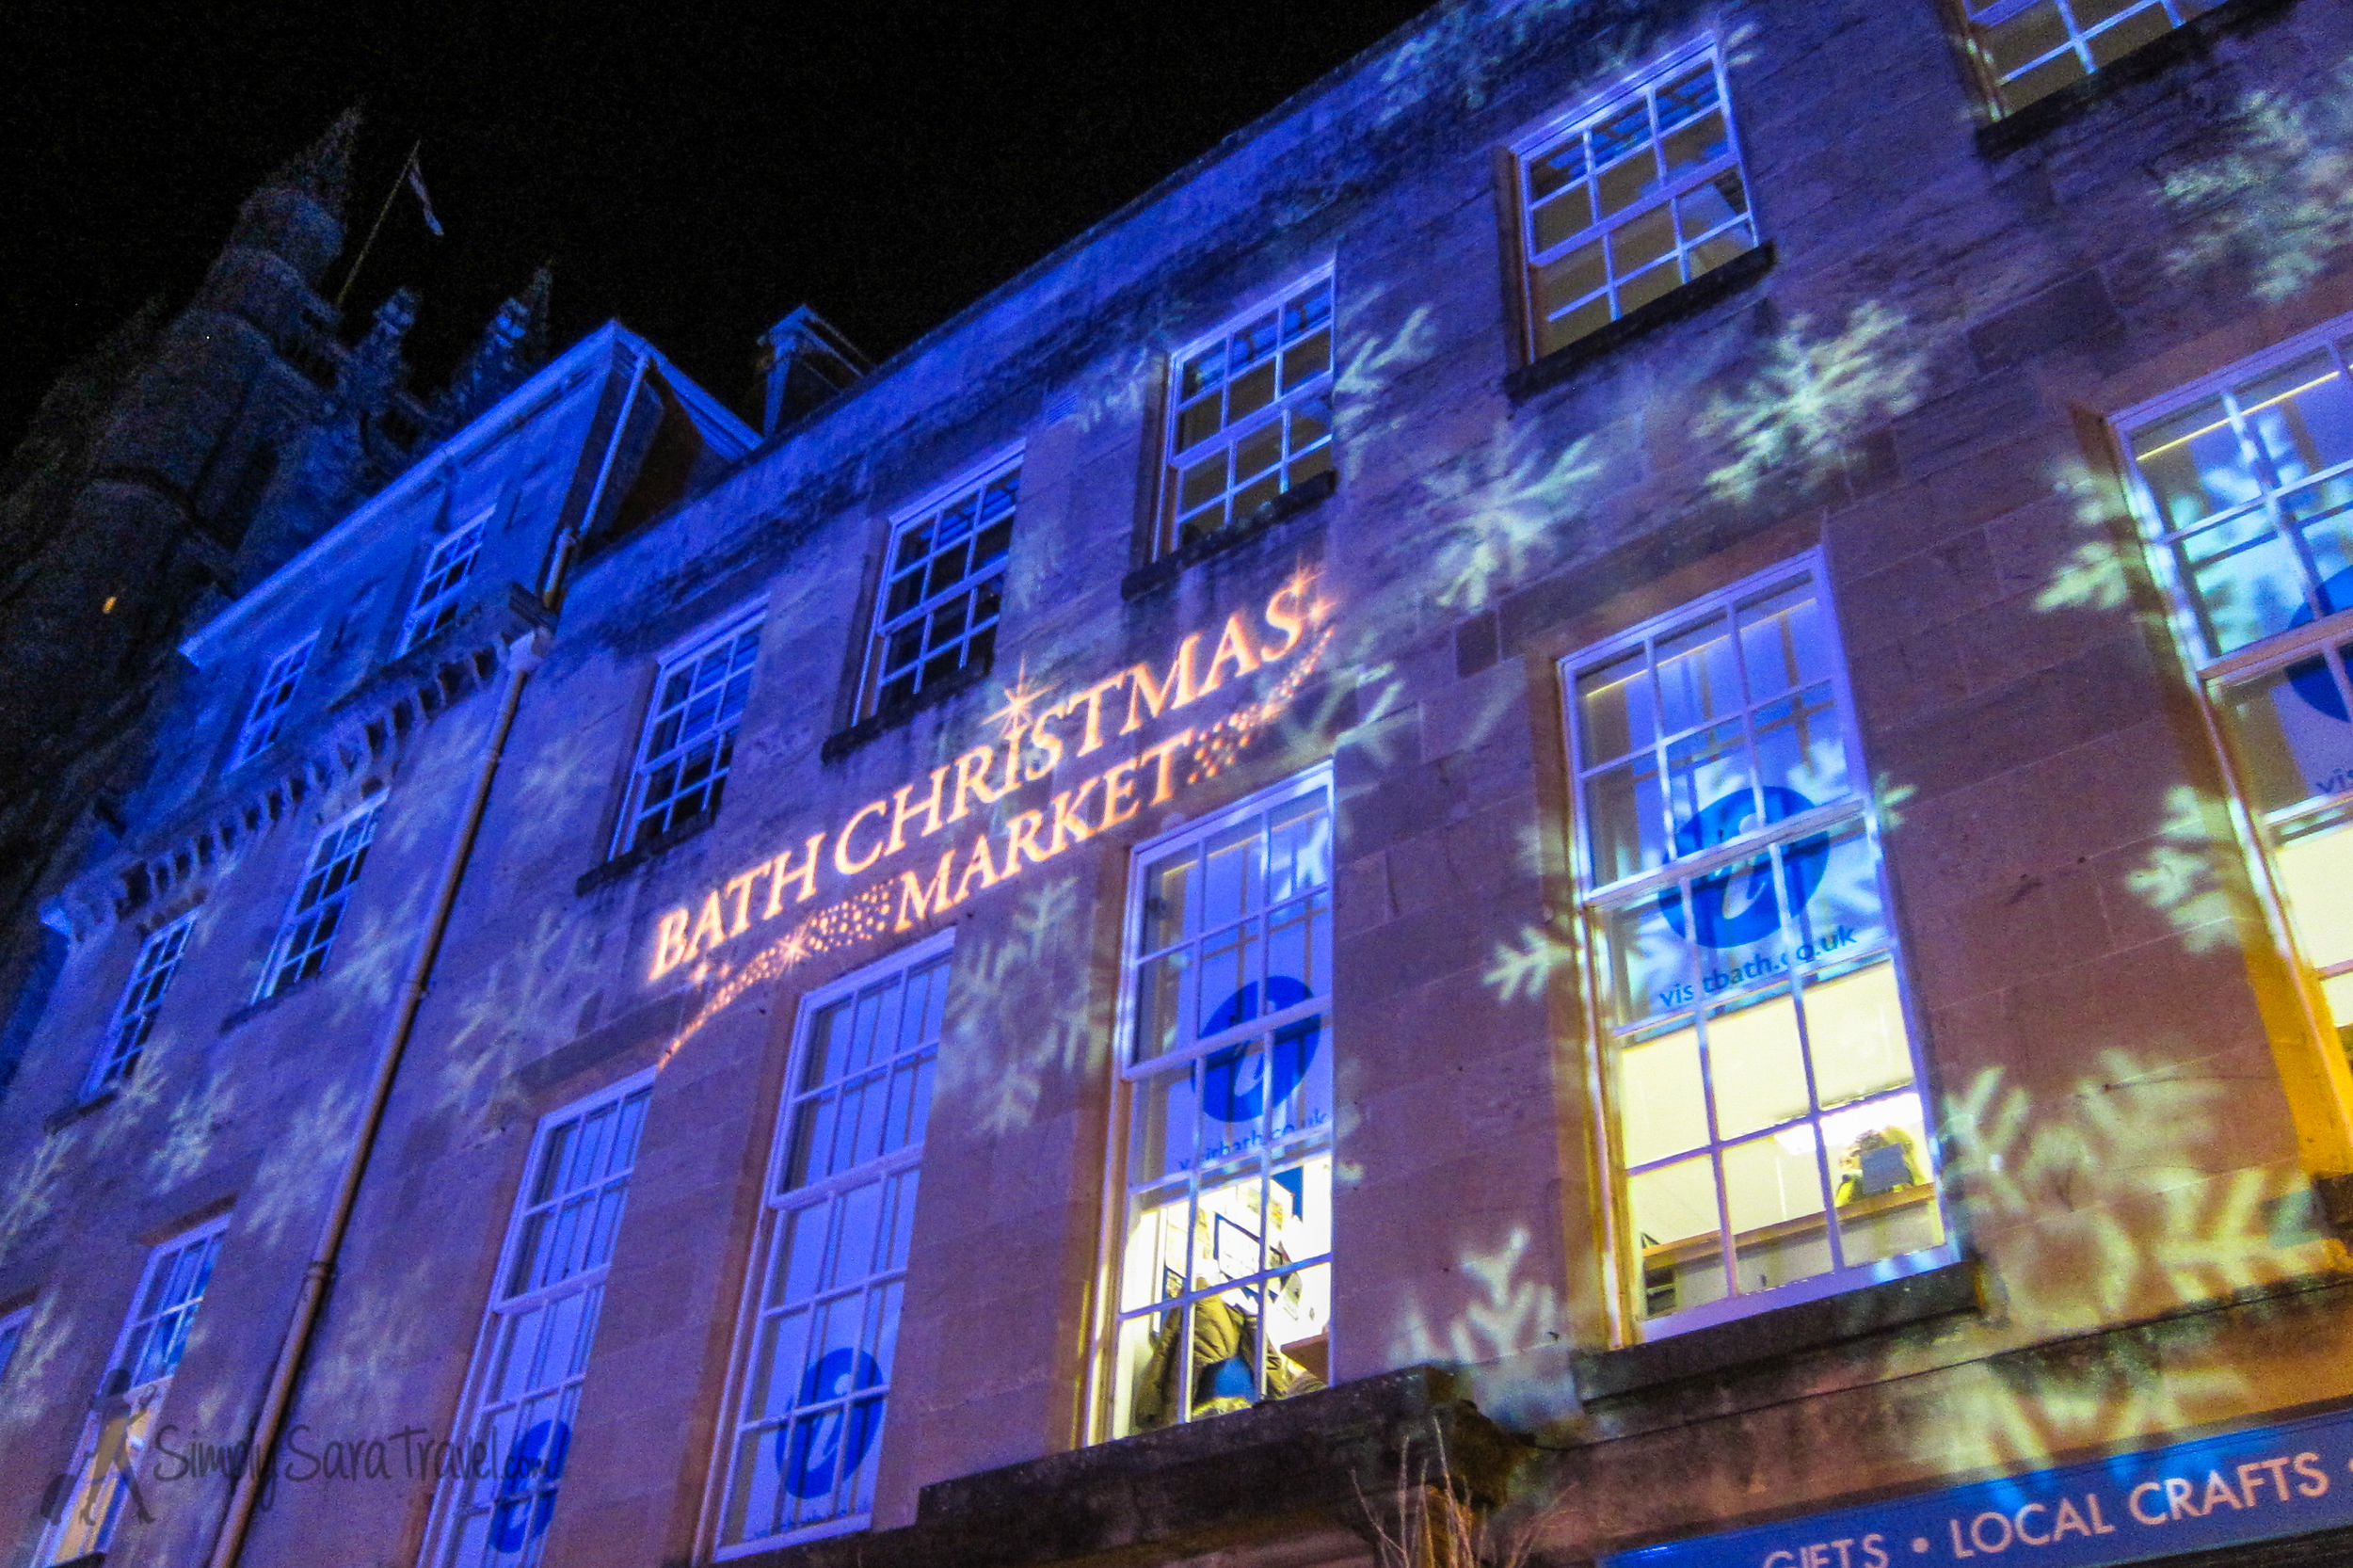 The Bath Christmas Market, projected onto a building